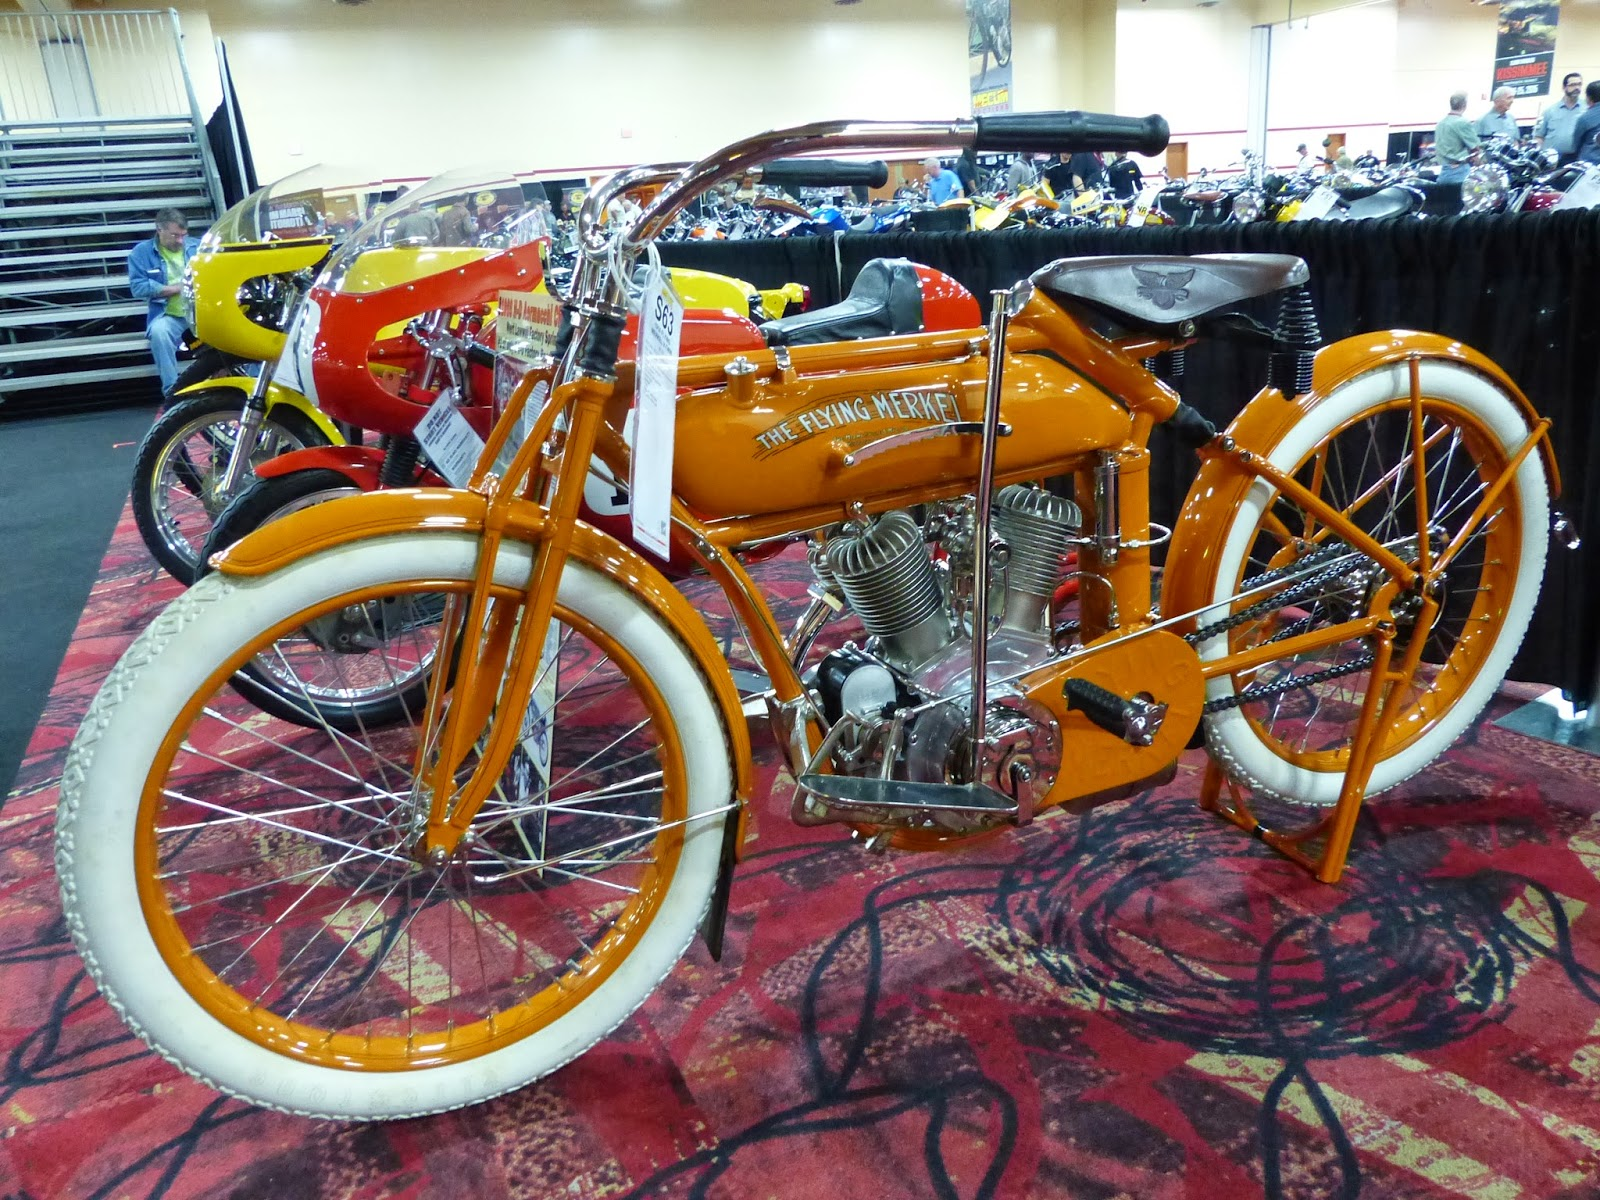 1915 Flying Merkel for sale at the 2015 Mecum Las Vegas Motorcycle Auction f85904b79